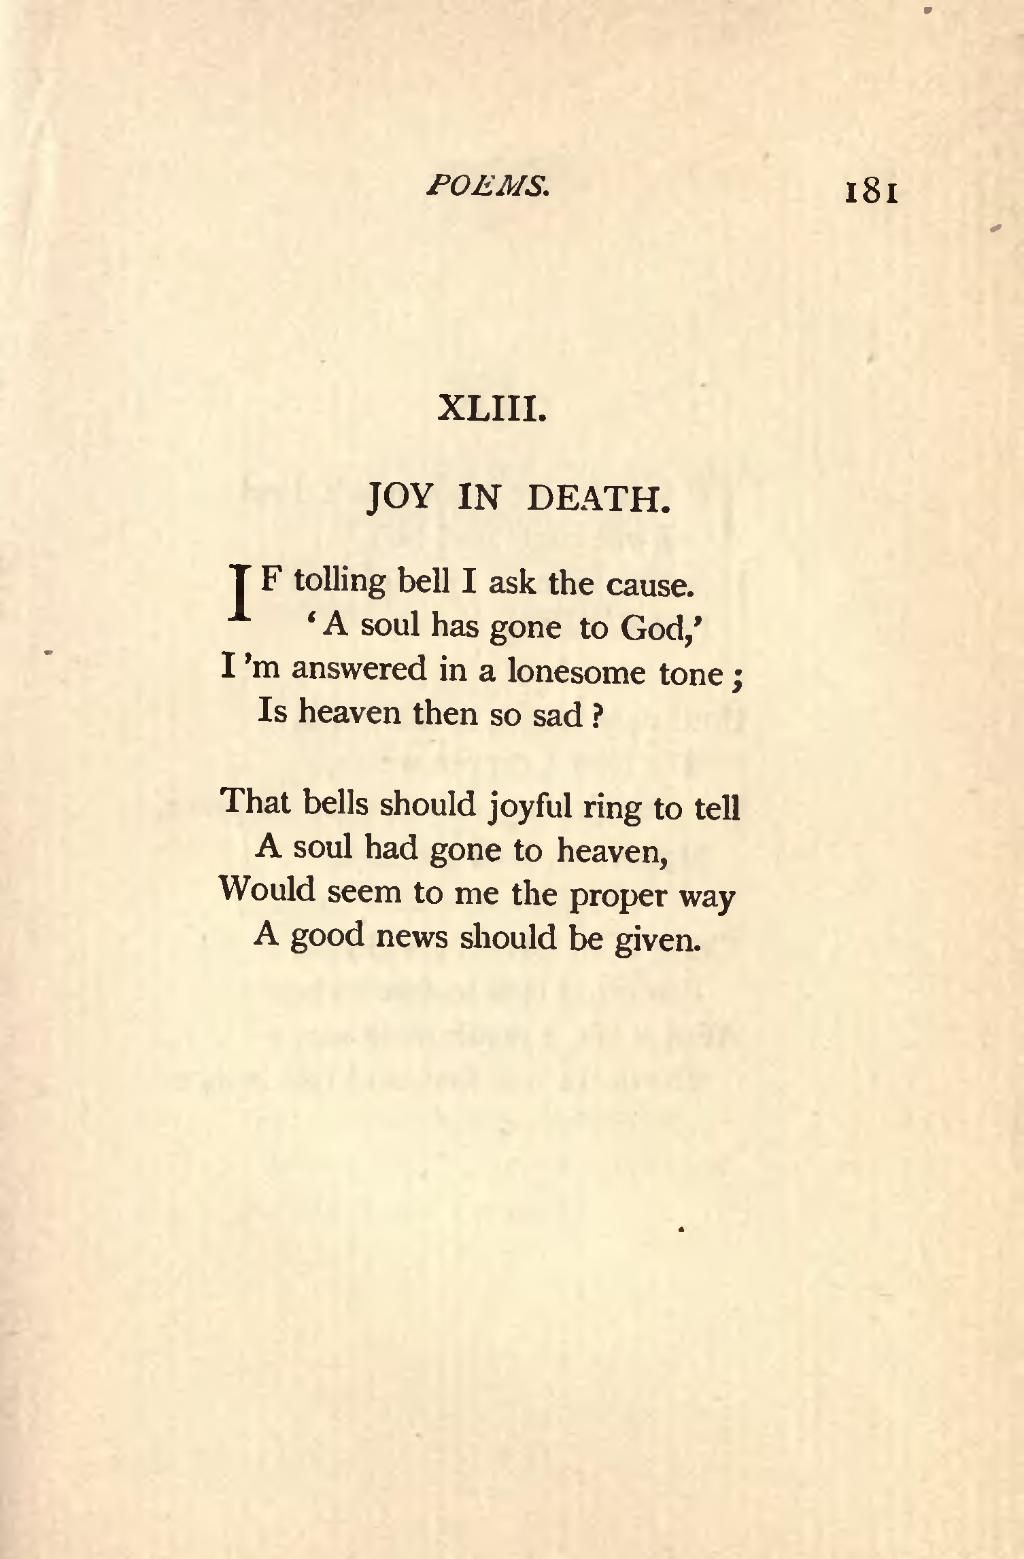 emily dickinsons view of death An unusual take on the onset of autumn, admittedly, but one of the many reasons why emily dickinson's poems repay closer analysis: they avoid the obvious take on things, and offer a strikingly individual perspective on the natural world.